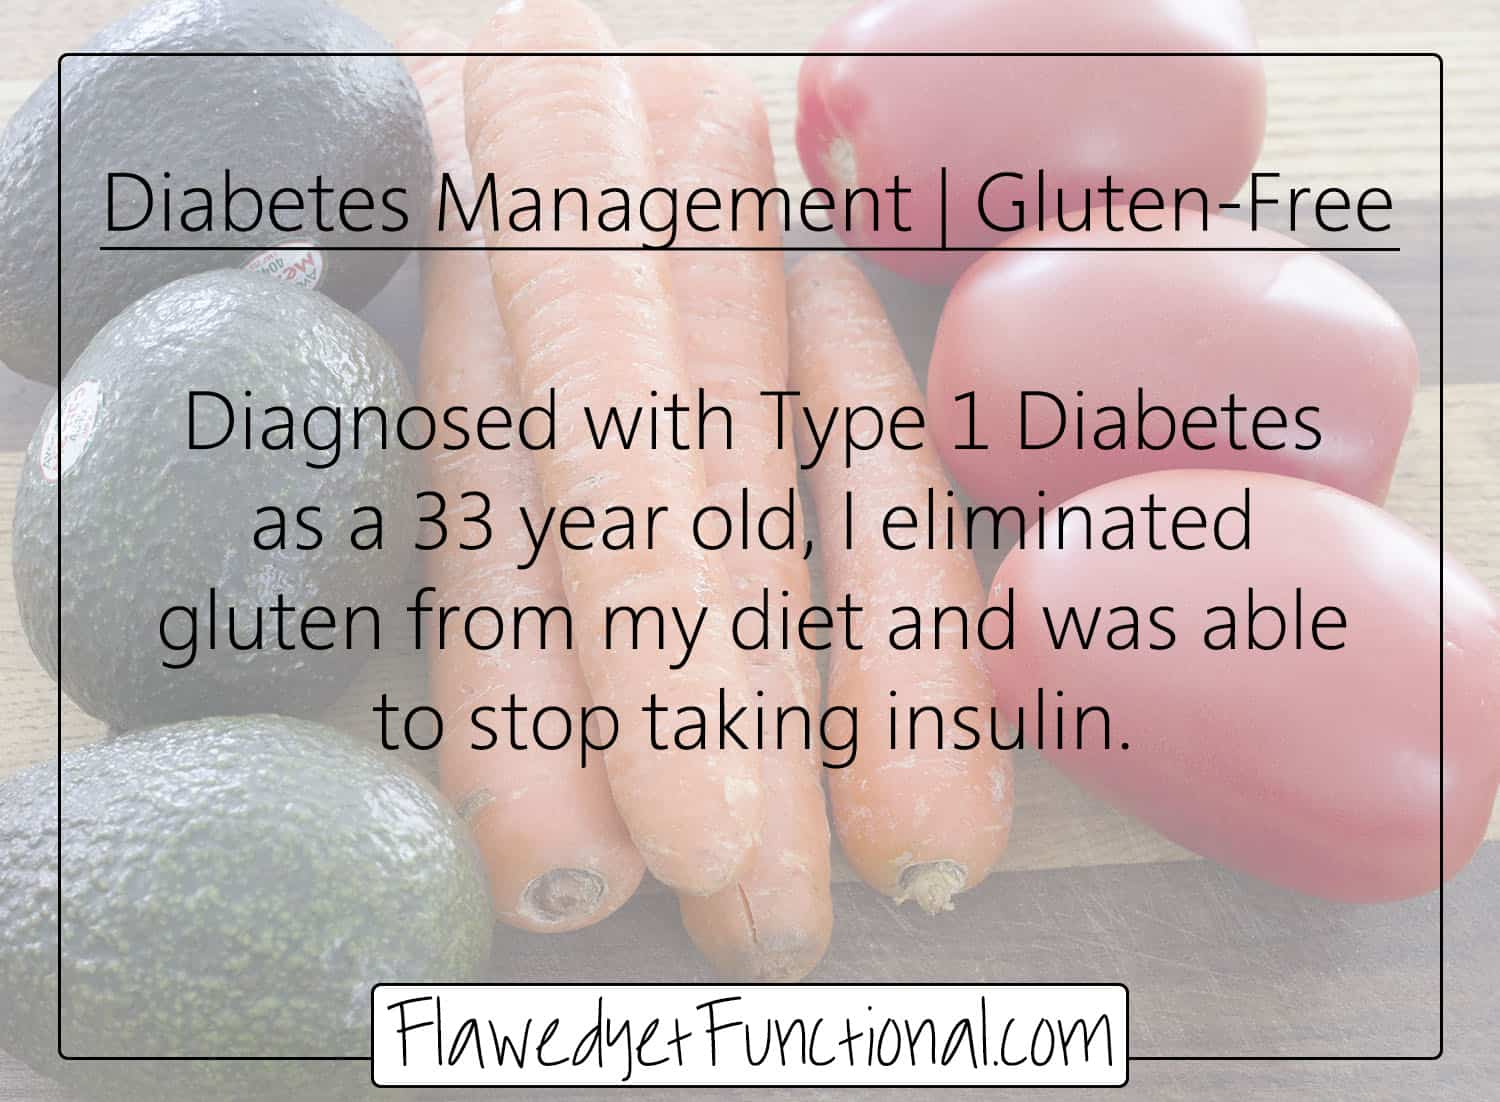 Insulin Free Type 1 Diabetes Management | Why I Became Gluten-Free